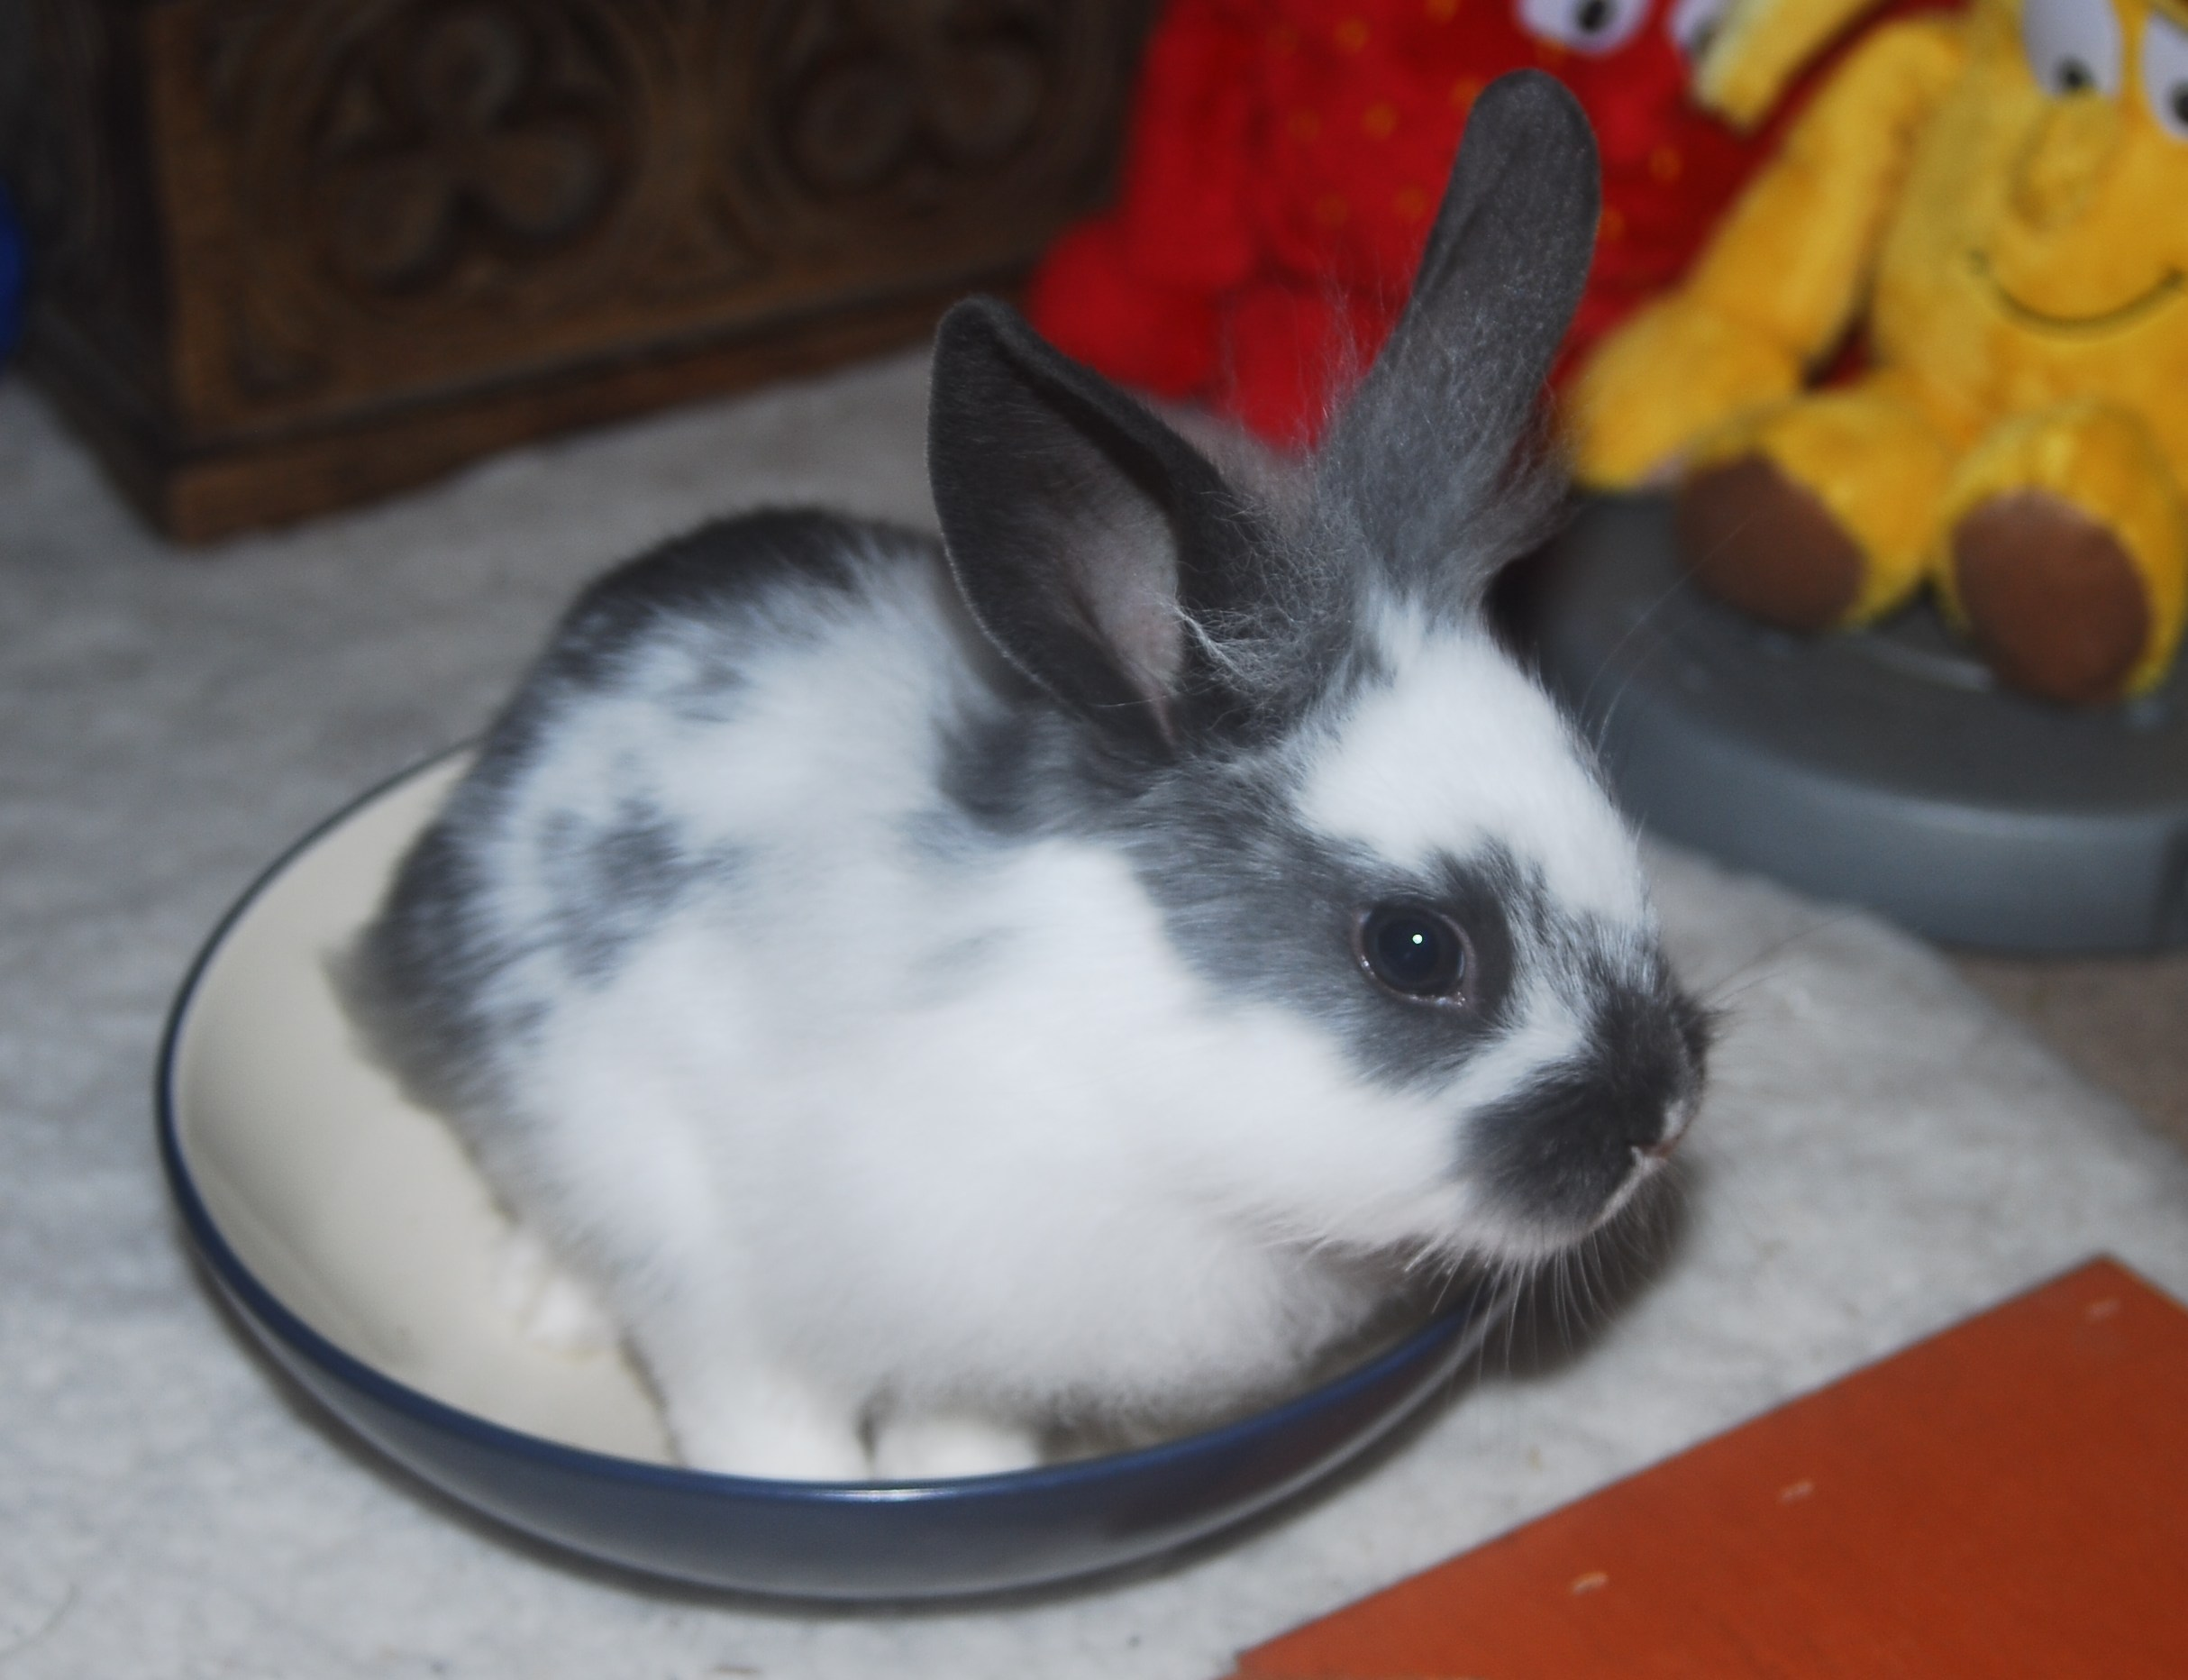 Bunny Is So Excited for Veggies He Hopped in the Salad Bowl